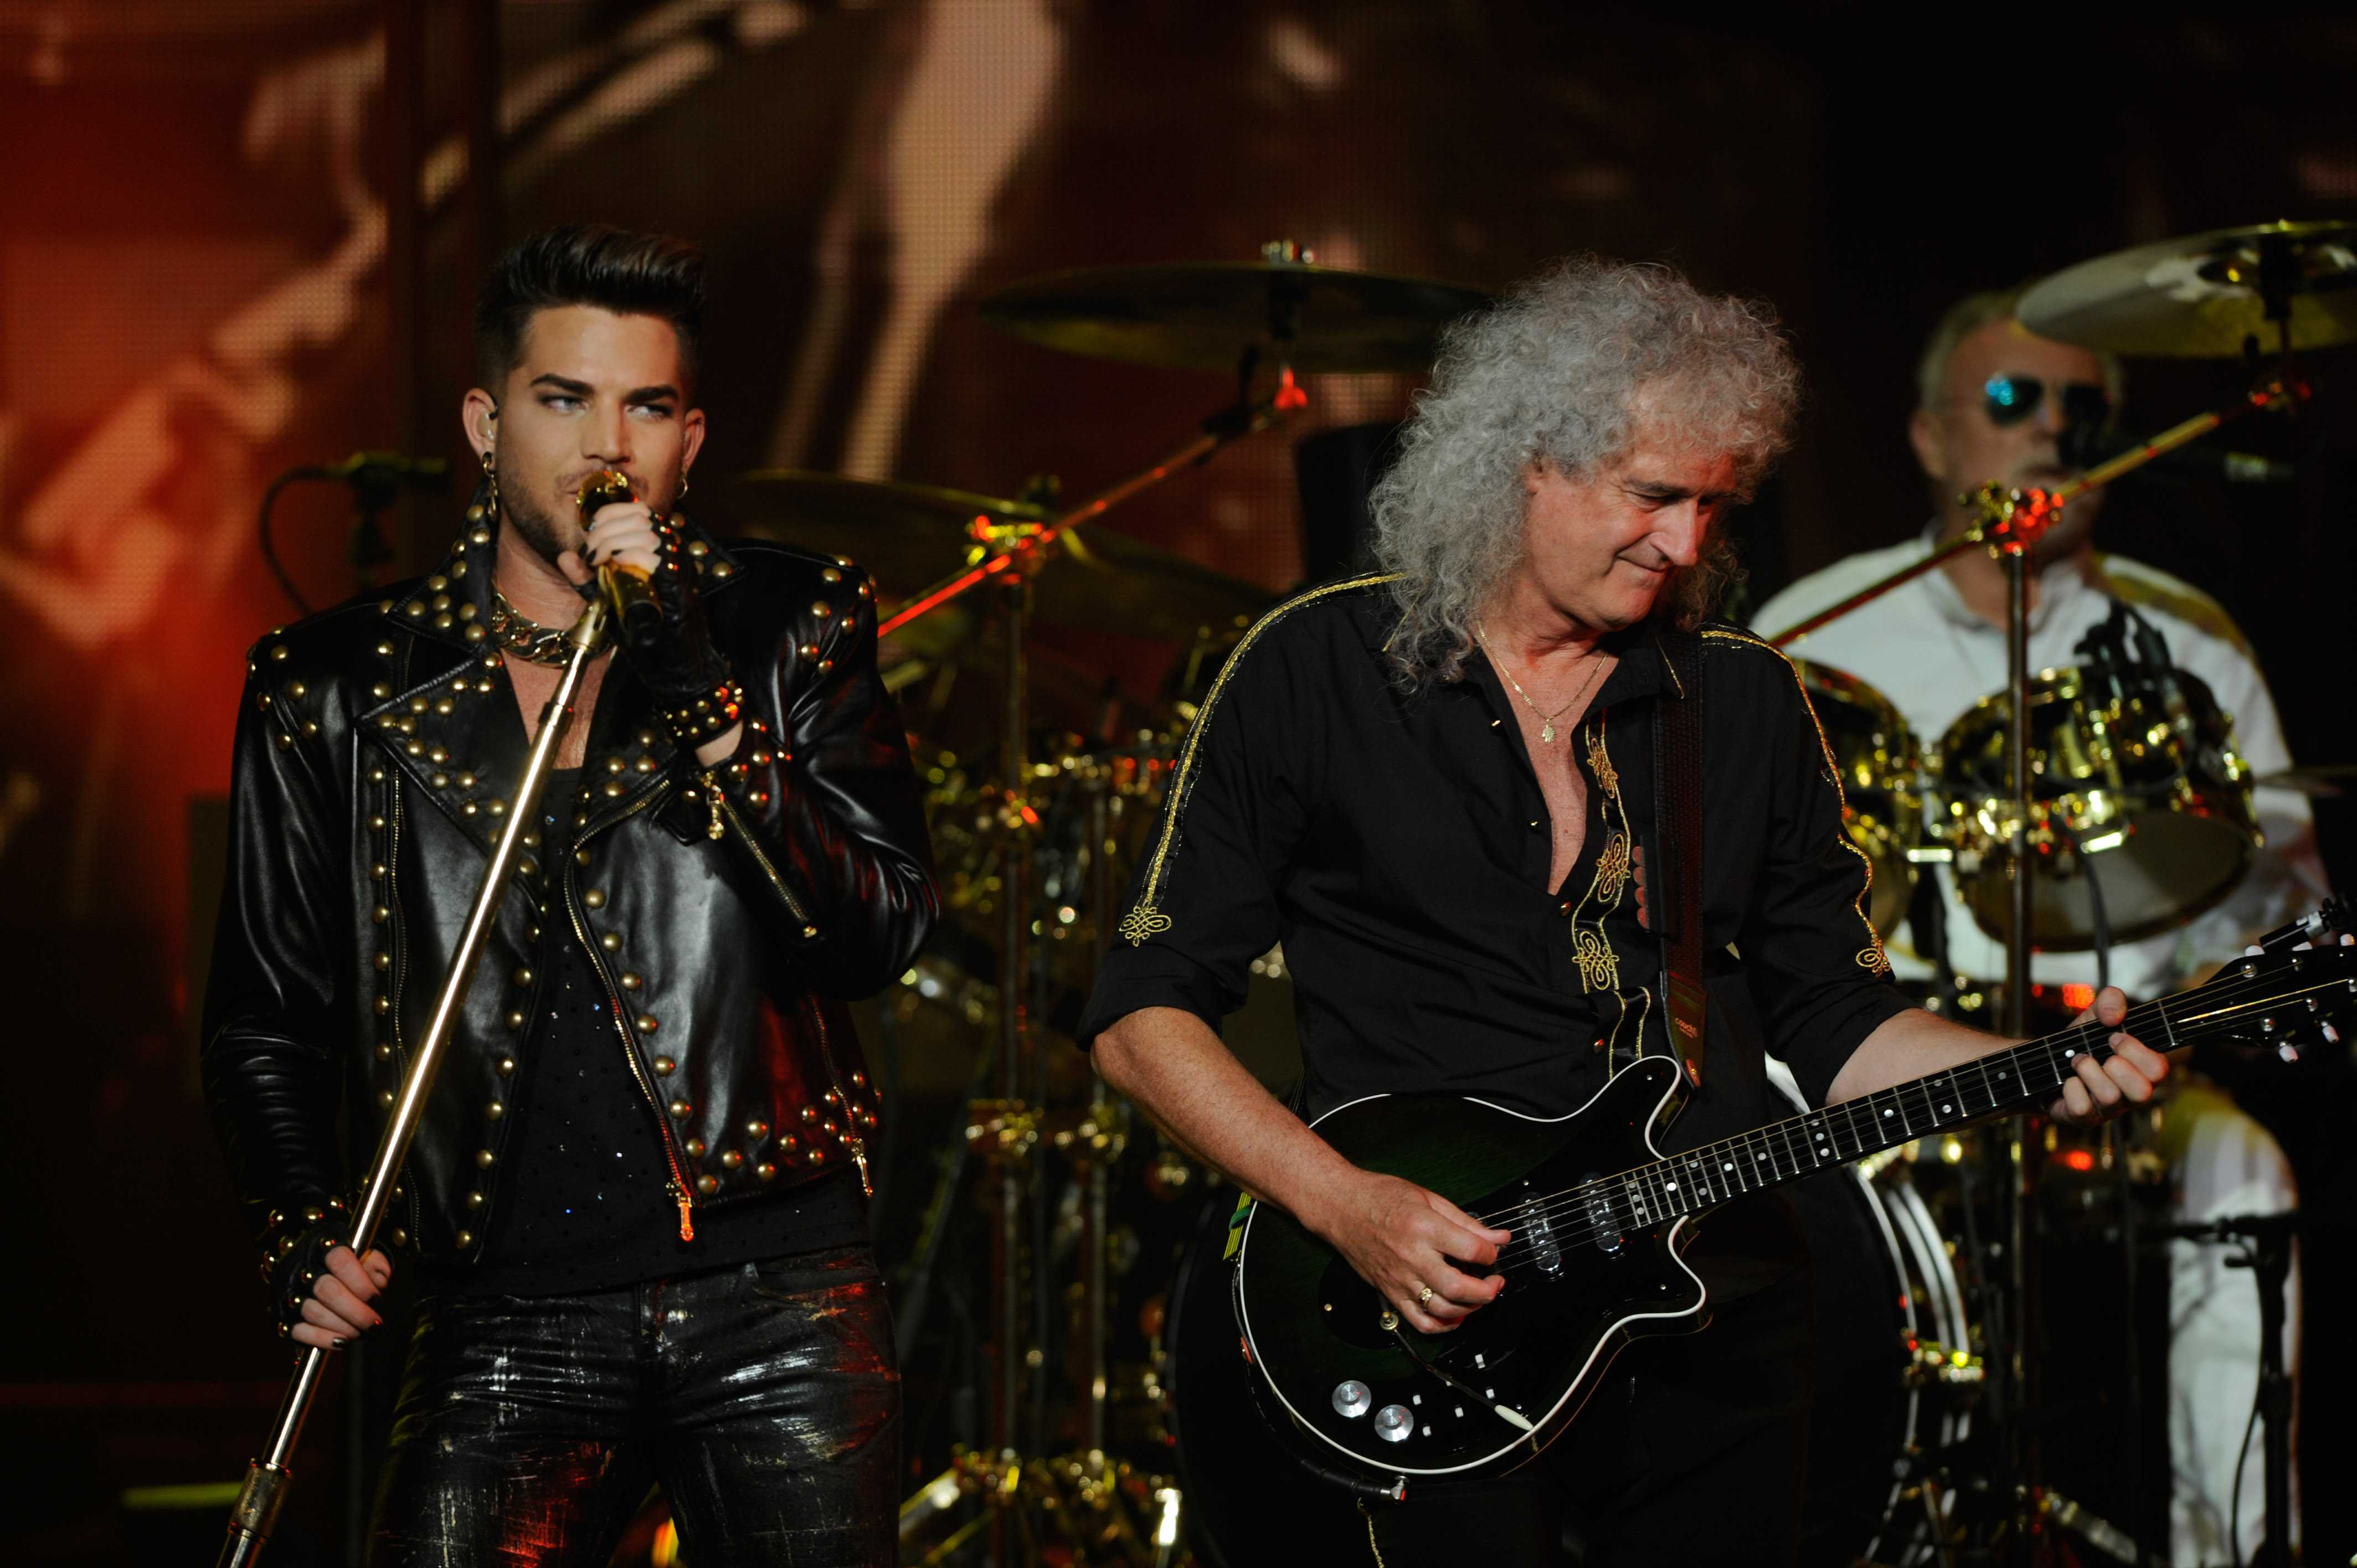 queen adam lambert 2015 presse kit adamnews. Black Bedroom Furniture Sets. Home Design Ideas